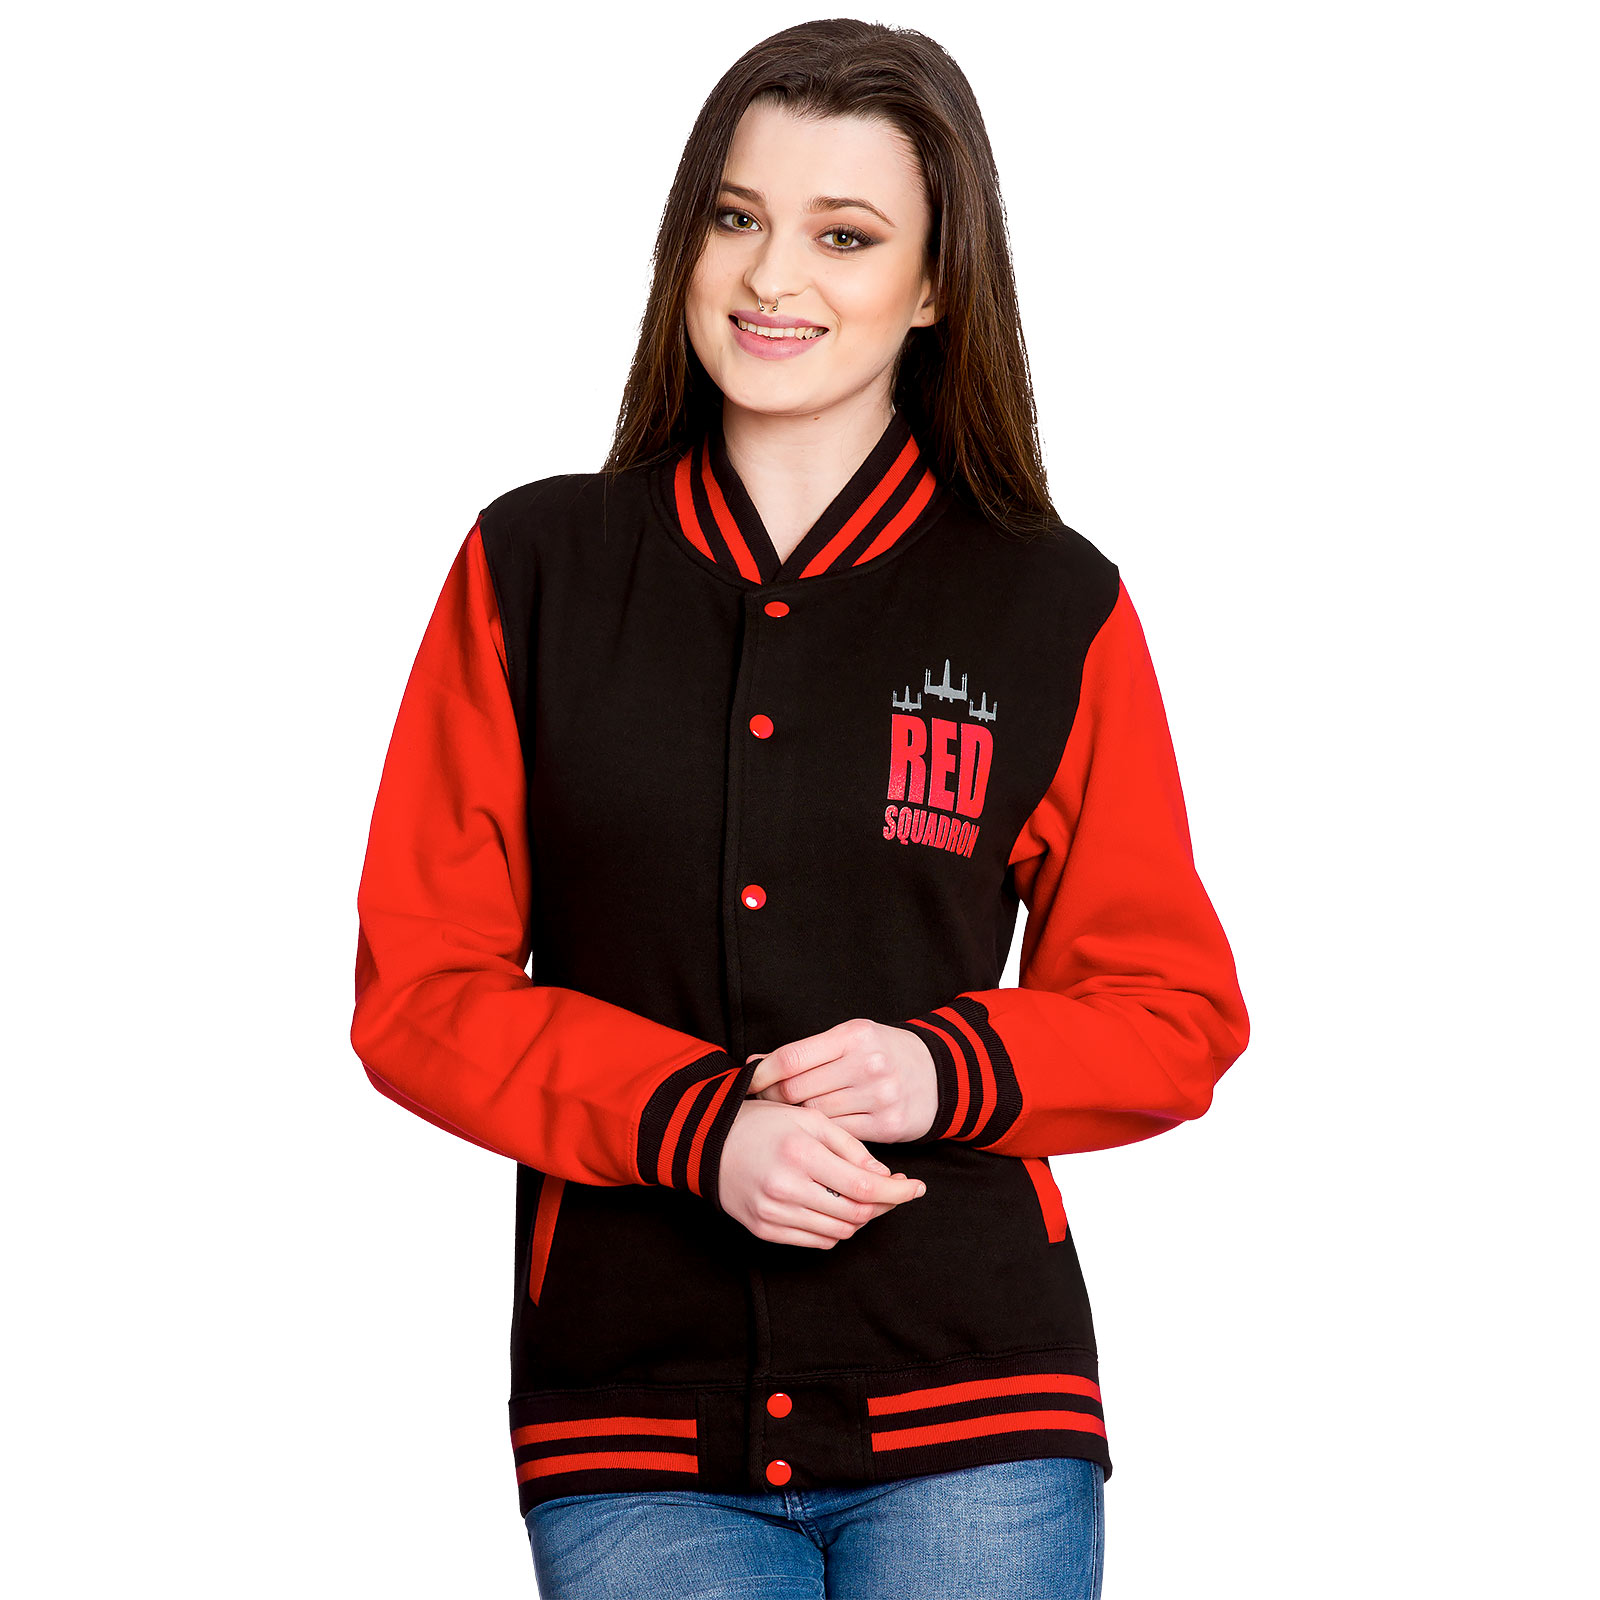 Rogue One College Jacke - Red Squadron Star Wars